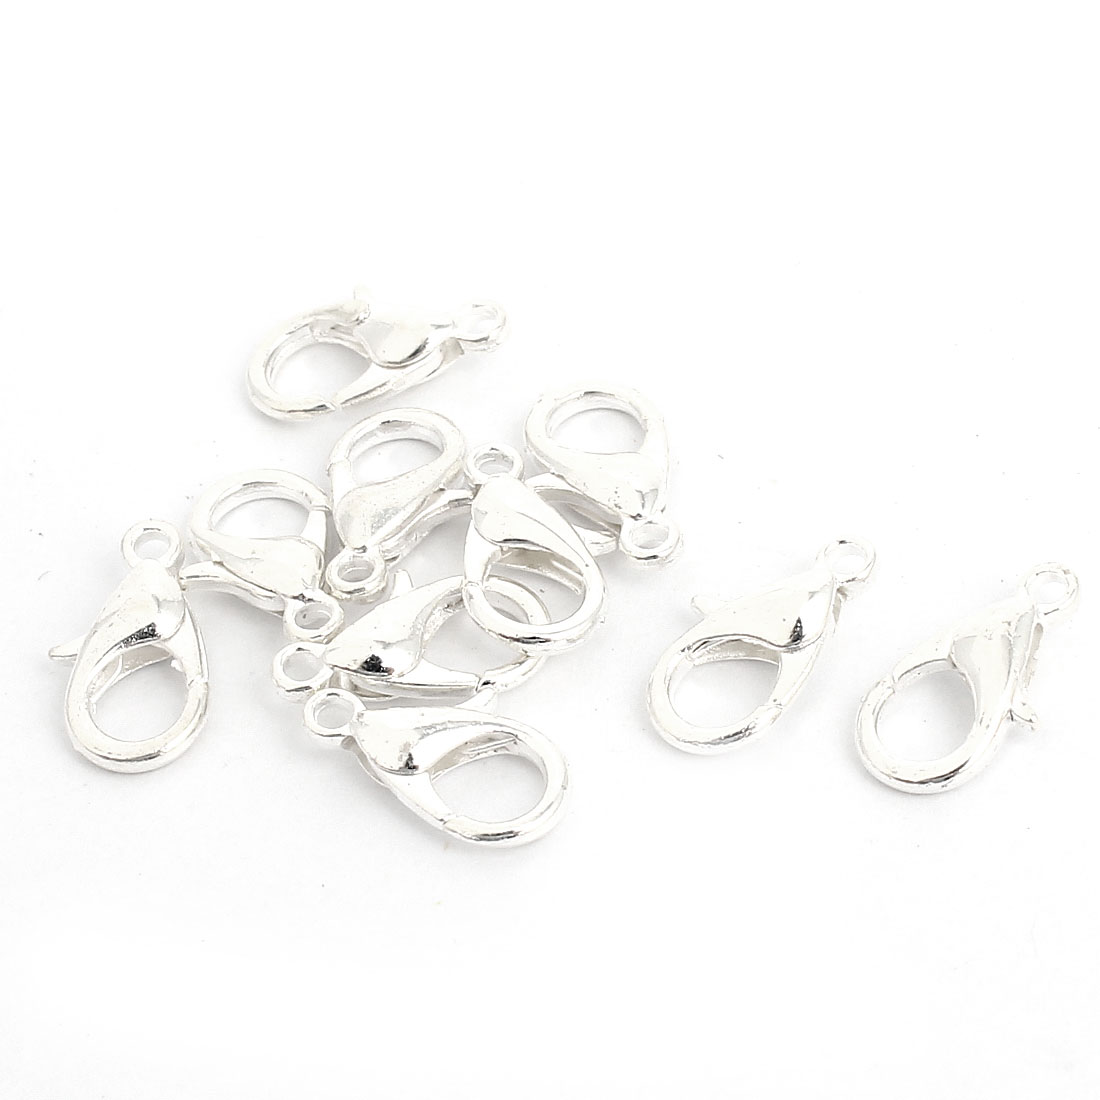 Bracelet Chain Findings Silver Tone Lobster Claw Parrot Clasps 12mm 10 Pcs